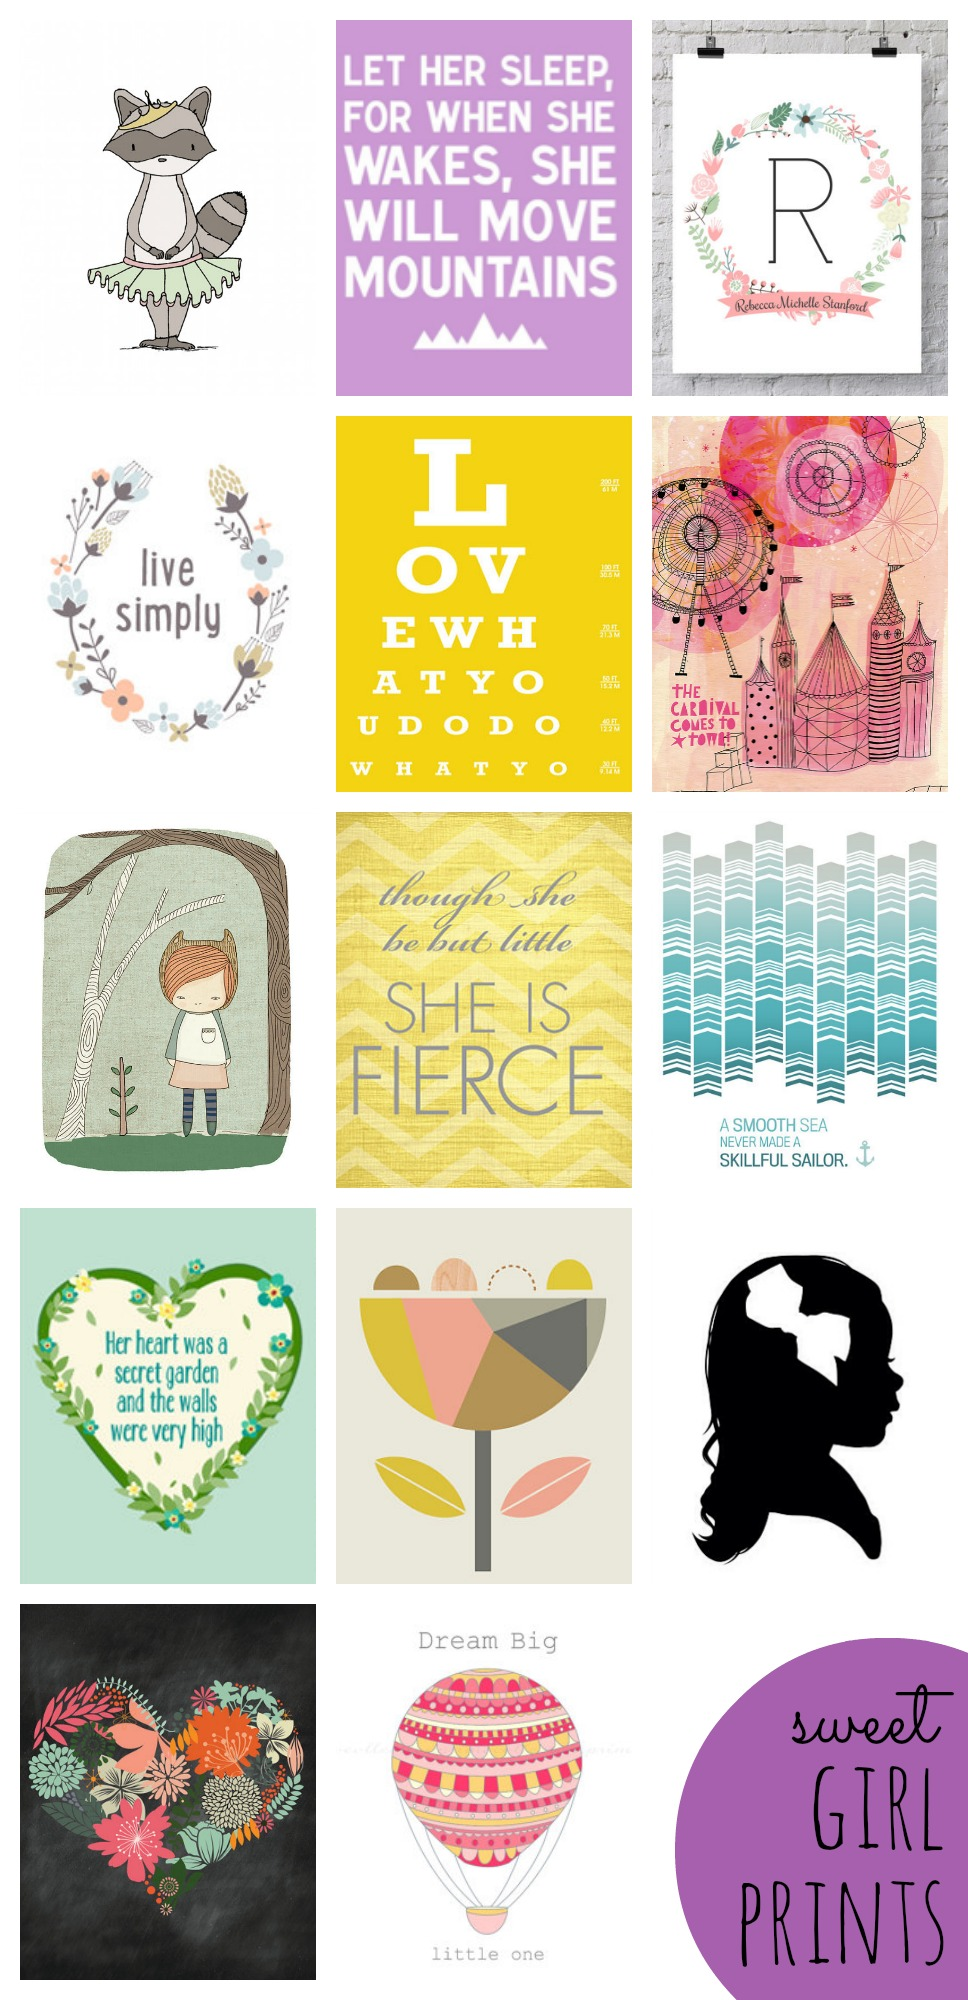 sweet girl prints